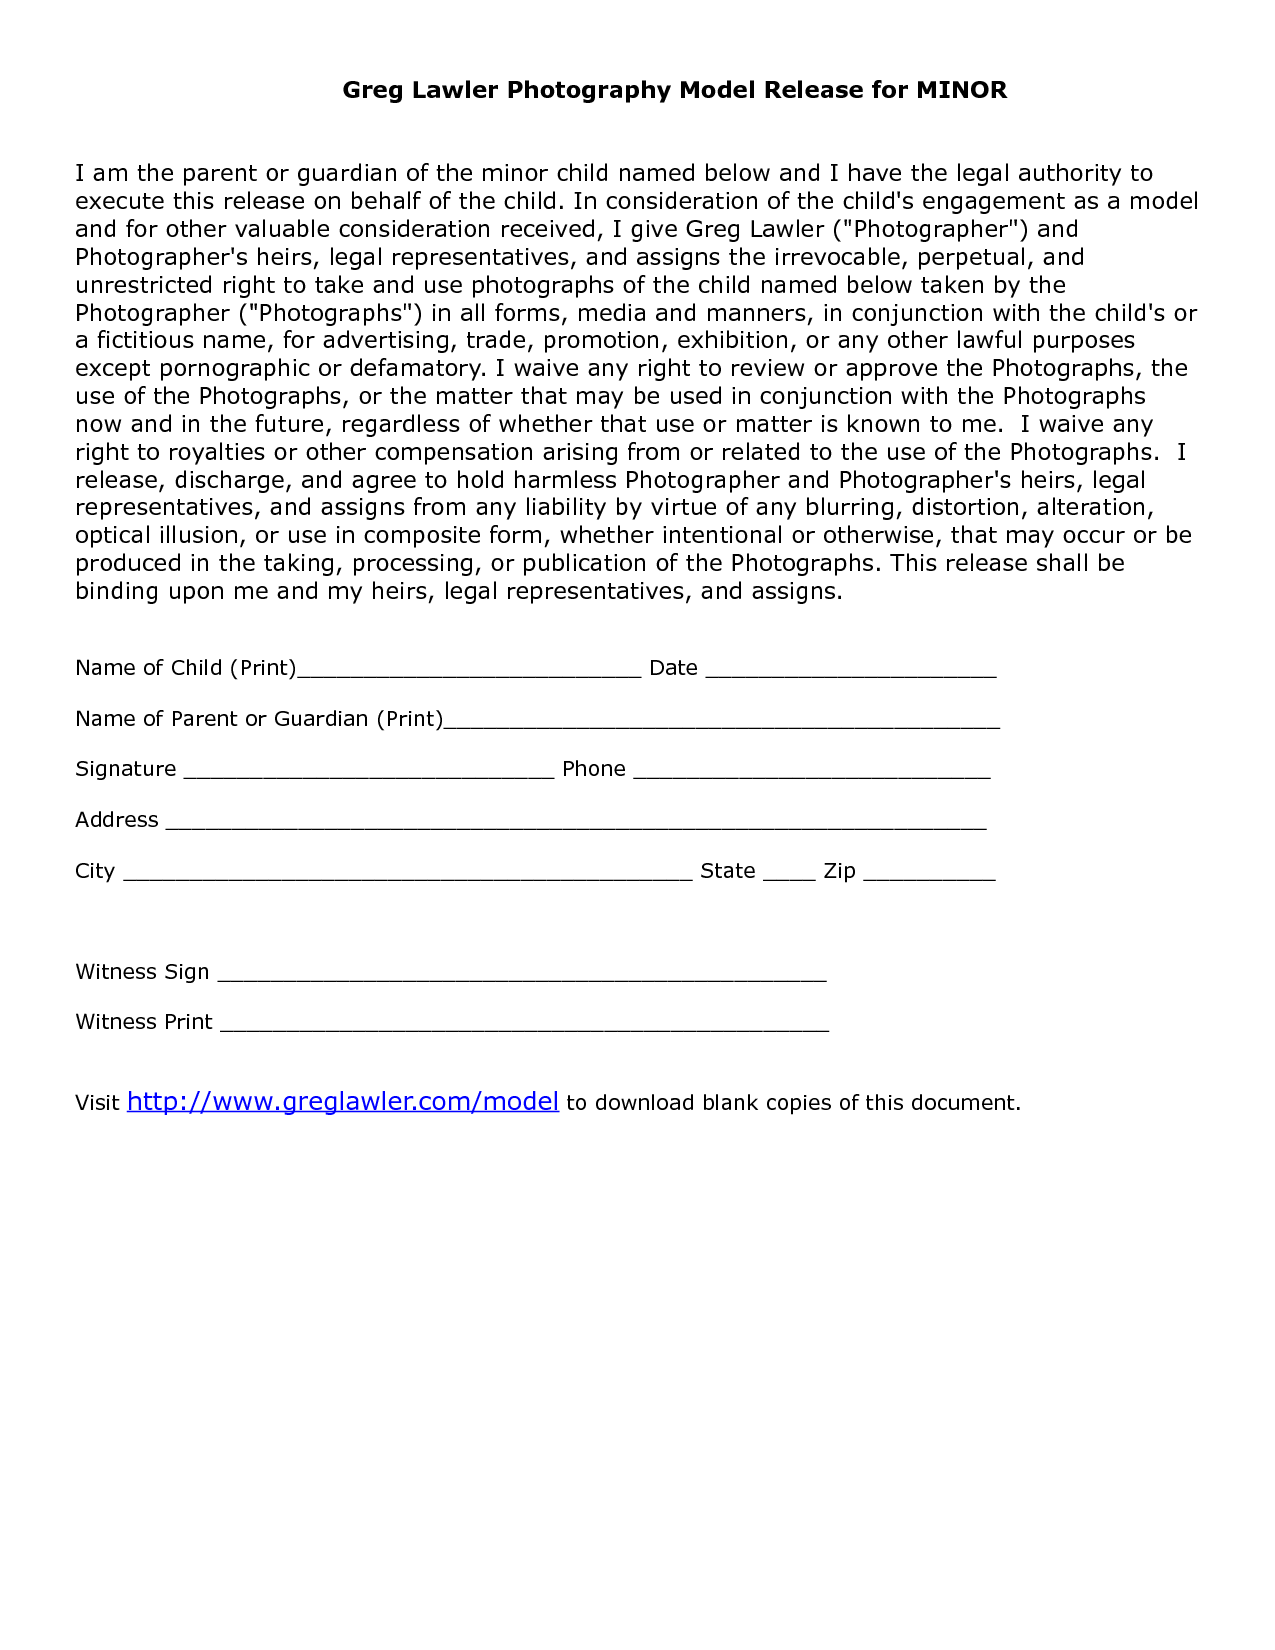 waiver of liability template uk - minor model release form template photography ideas